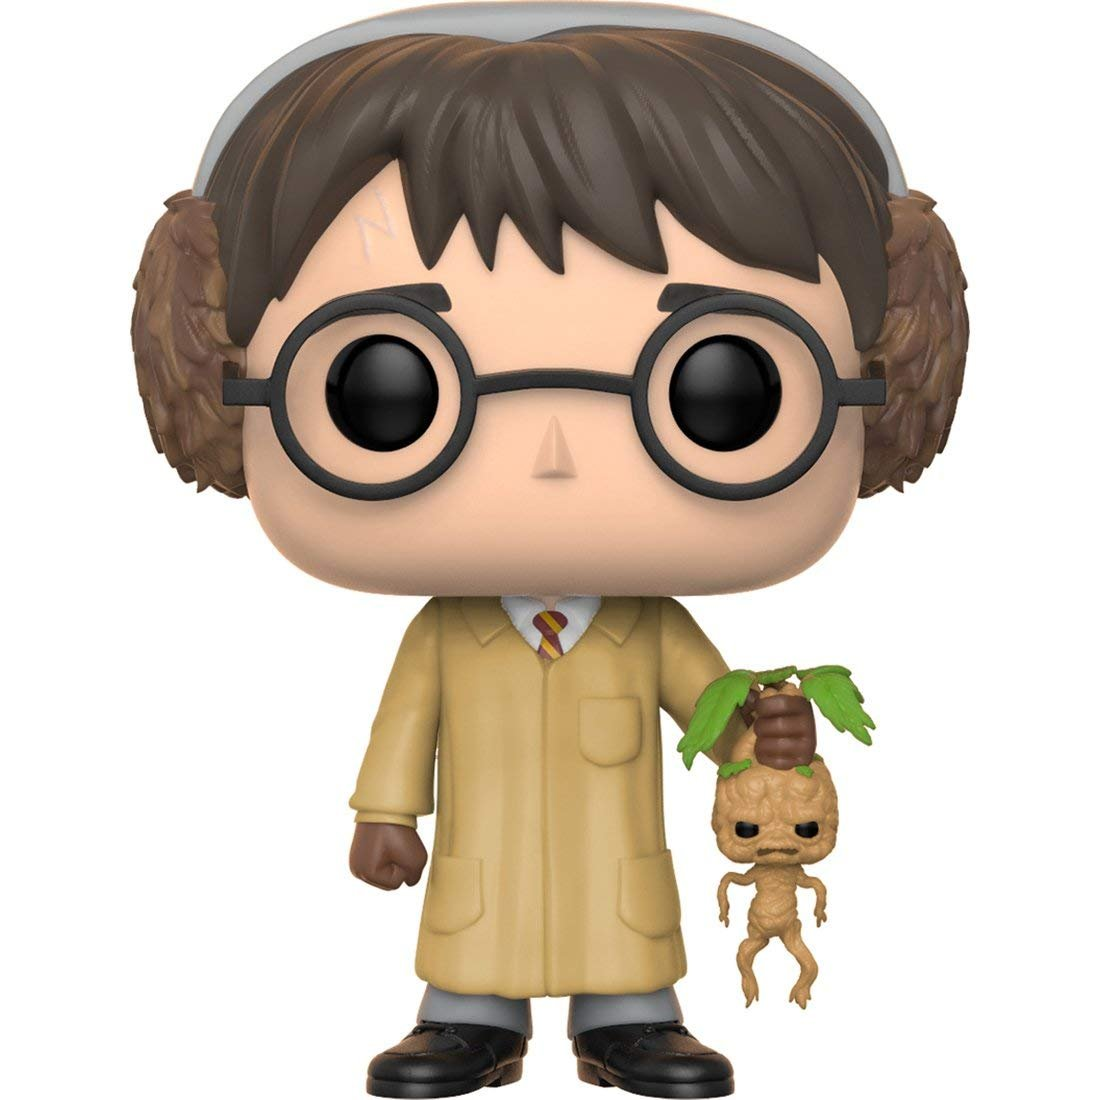 Herbology Movies: Harry Potter Harry Potter Vinyl Figure Bundled with Pop Box Protector Case Funko Pop